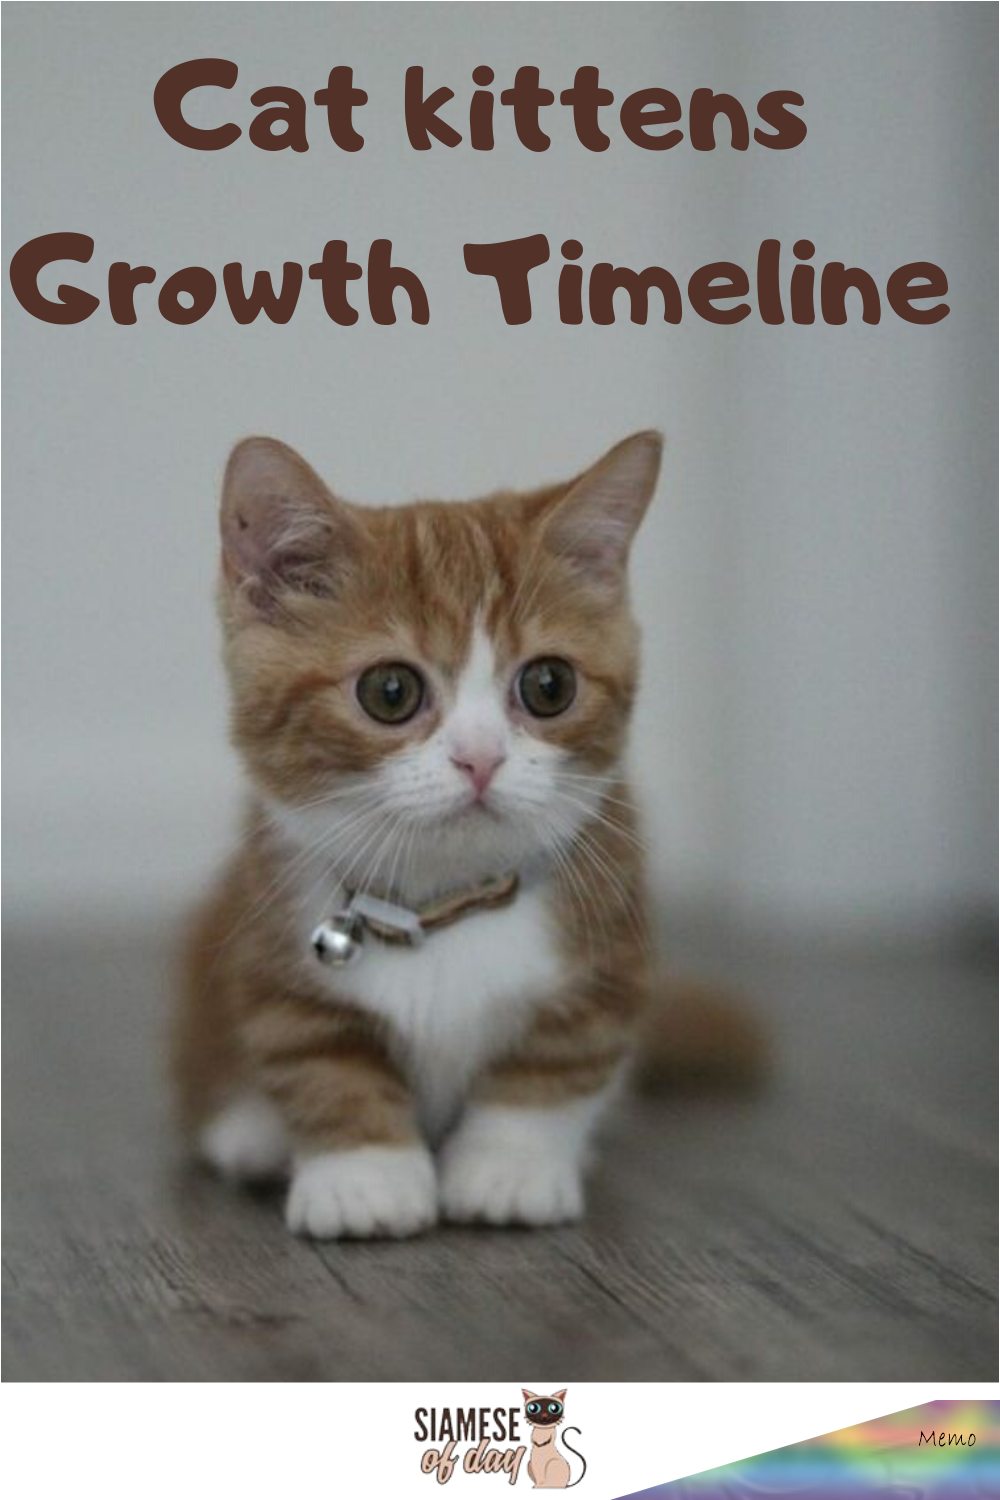 Jan 31 2020 Siamese Kittens Growth Timeline The Siamese Kitten Is Born Completely White And As They Age Their Coa In 2020 Siamese Kittens Cats And Kittens Kittens